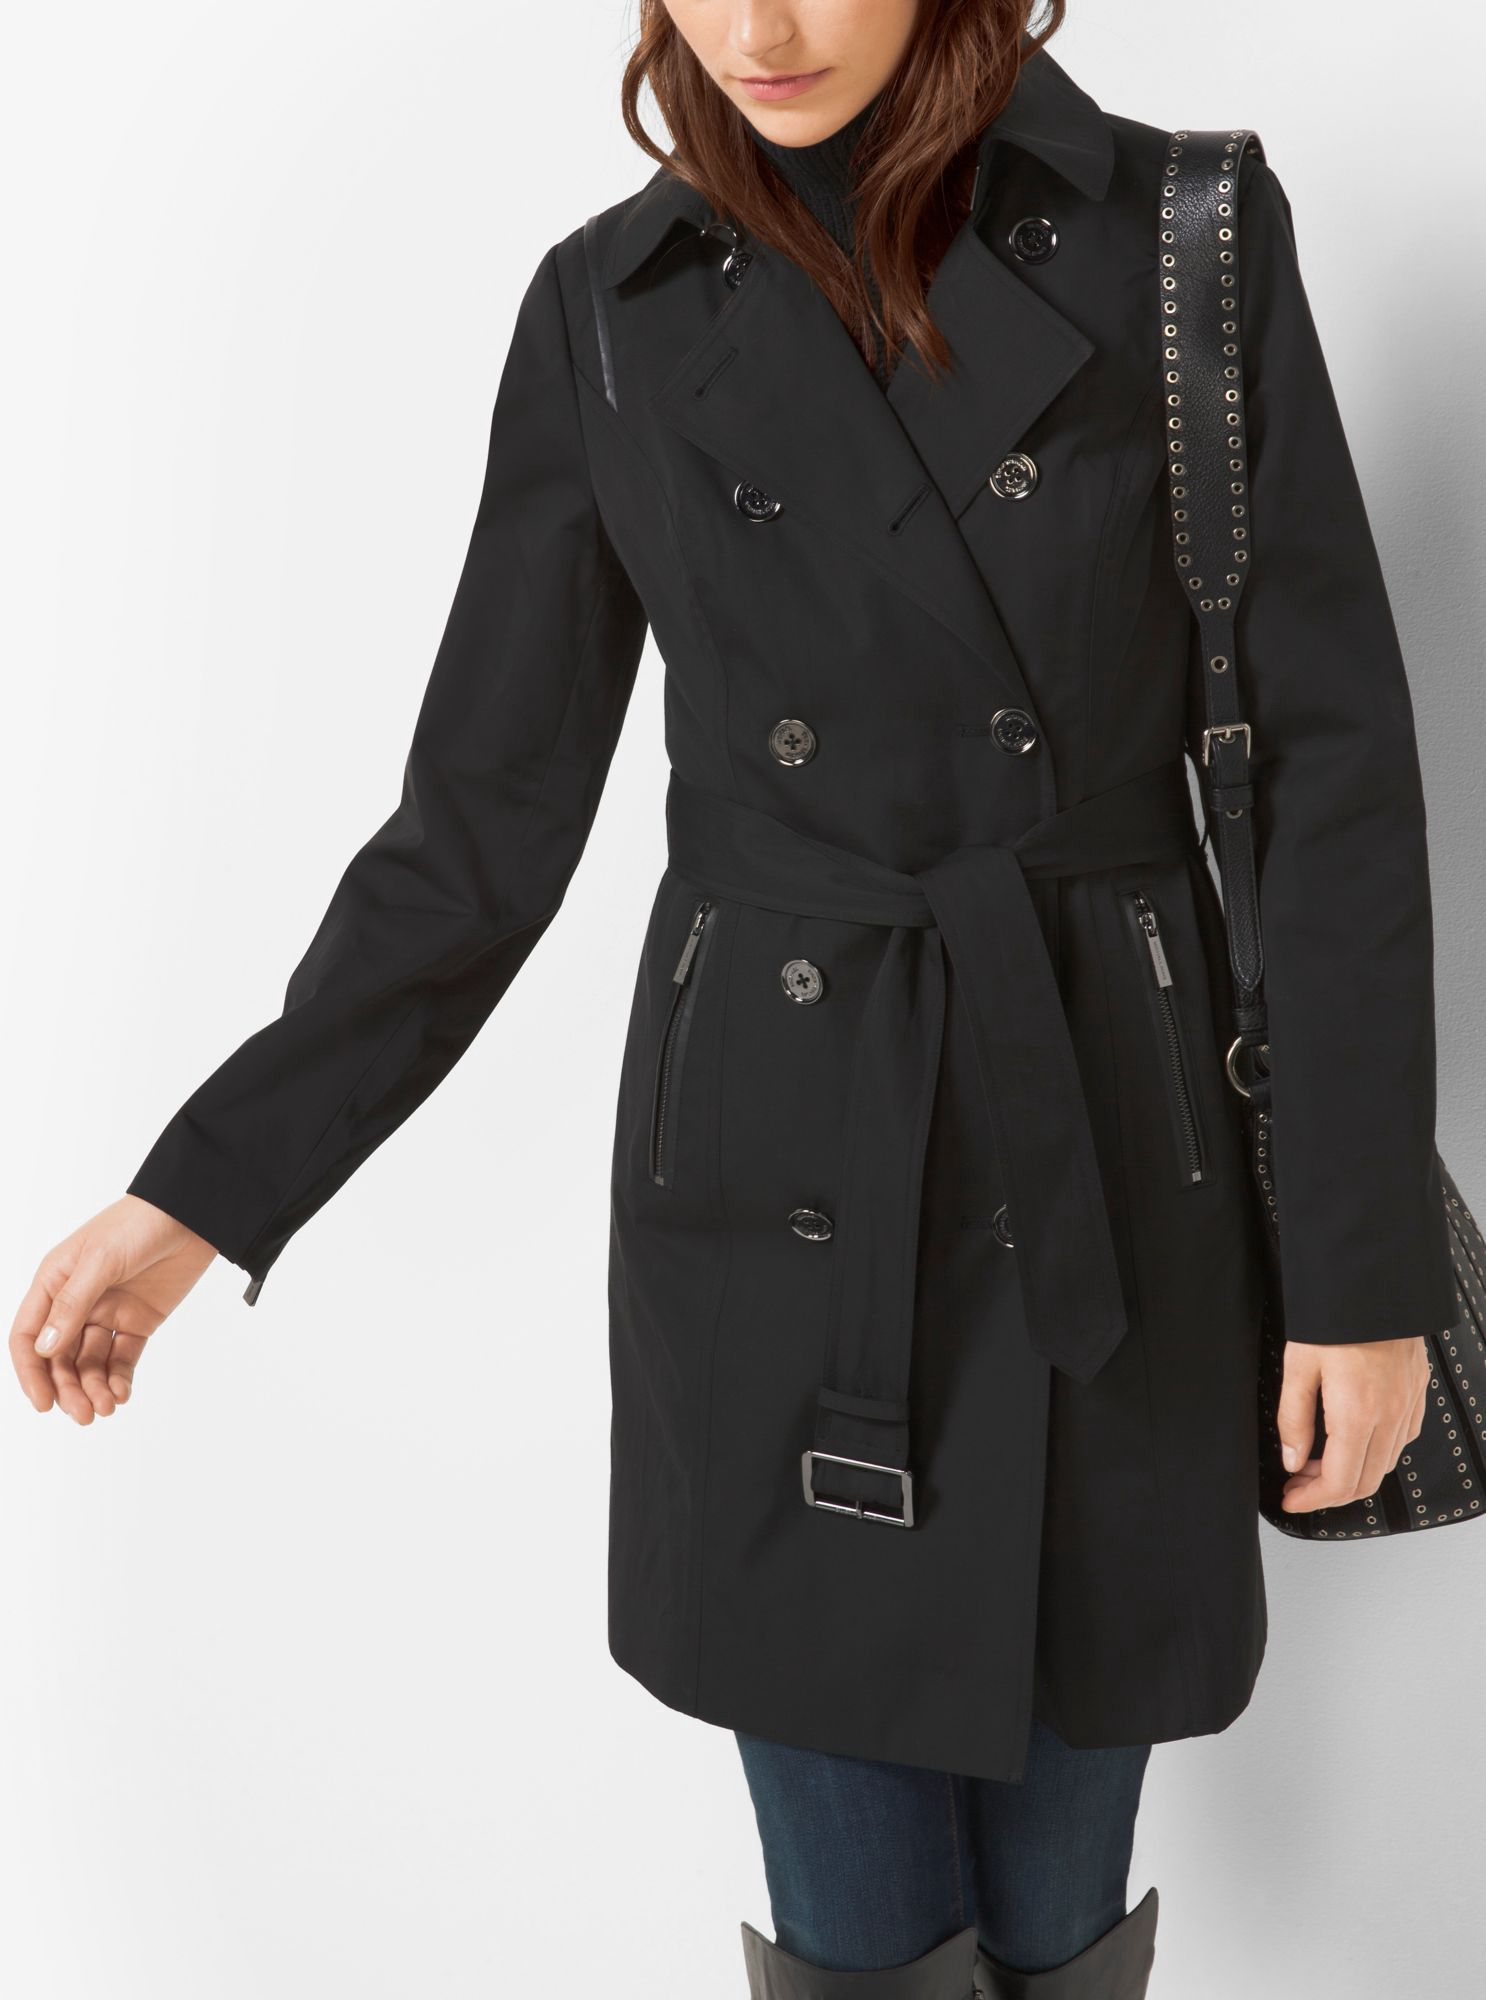 Faux LeatherTrimmed Trench Coat by Michael Kors Price